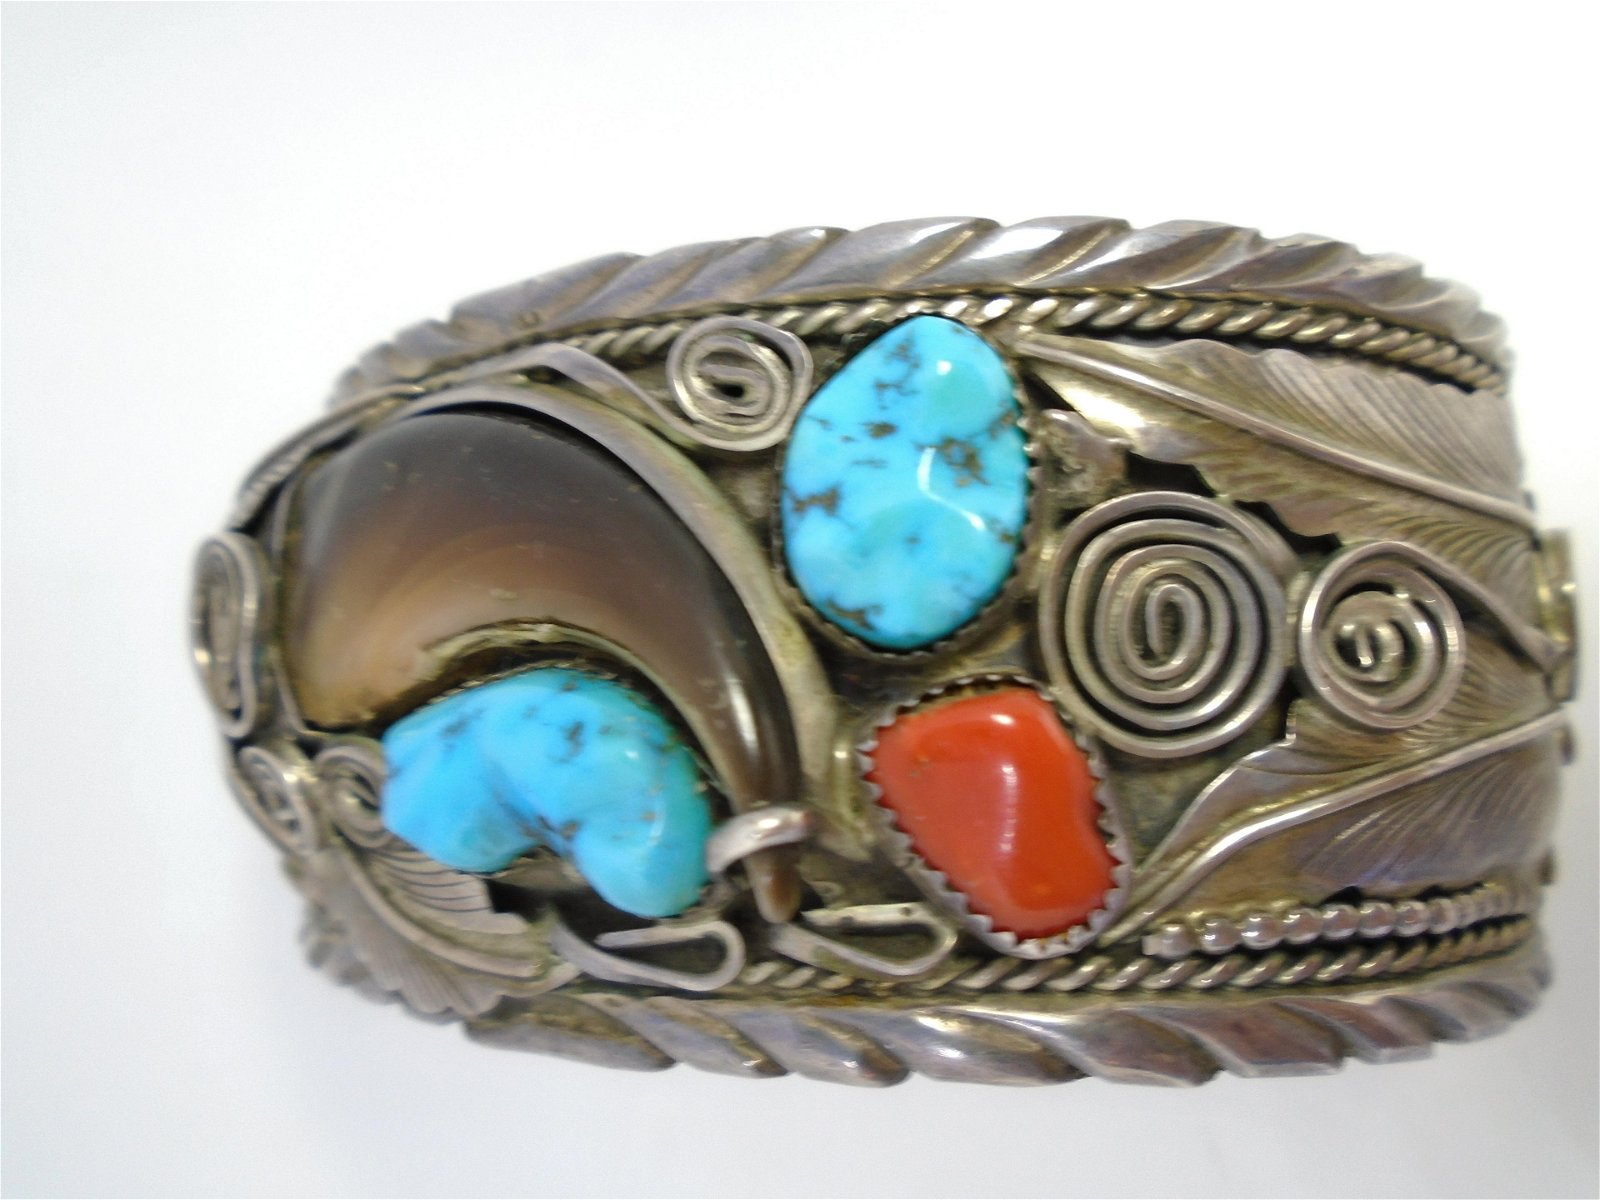 BEAR CLAW TURQUOISE BRACELET STERLING SILVER CUFF